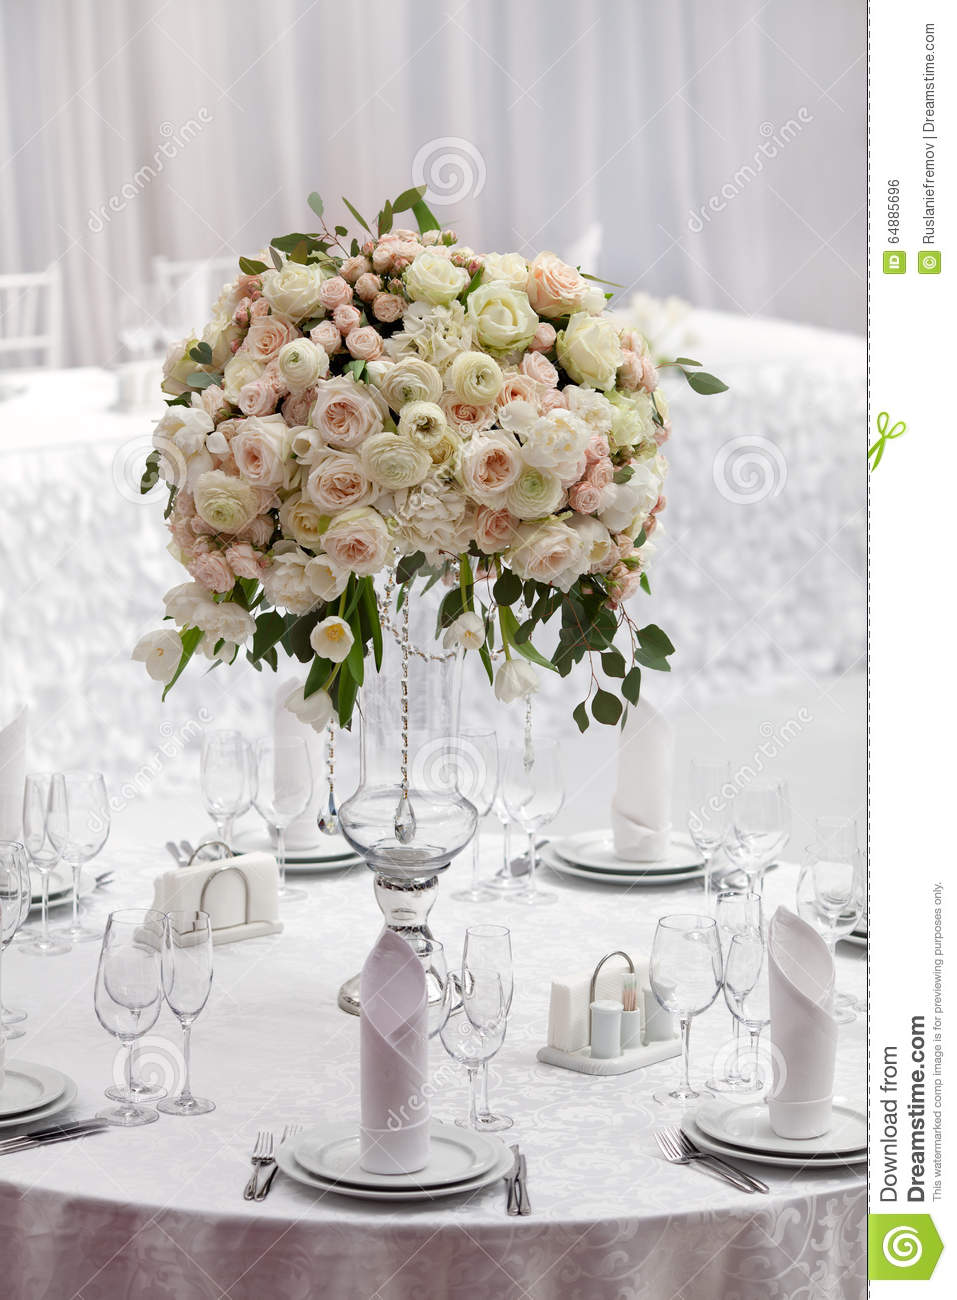 table setting at a luxury wedding reception beautiful flowers on the table